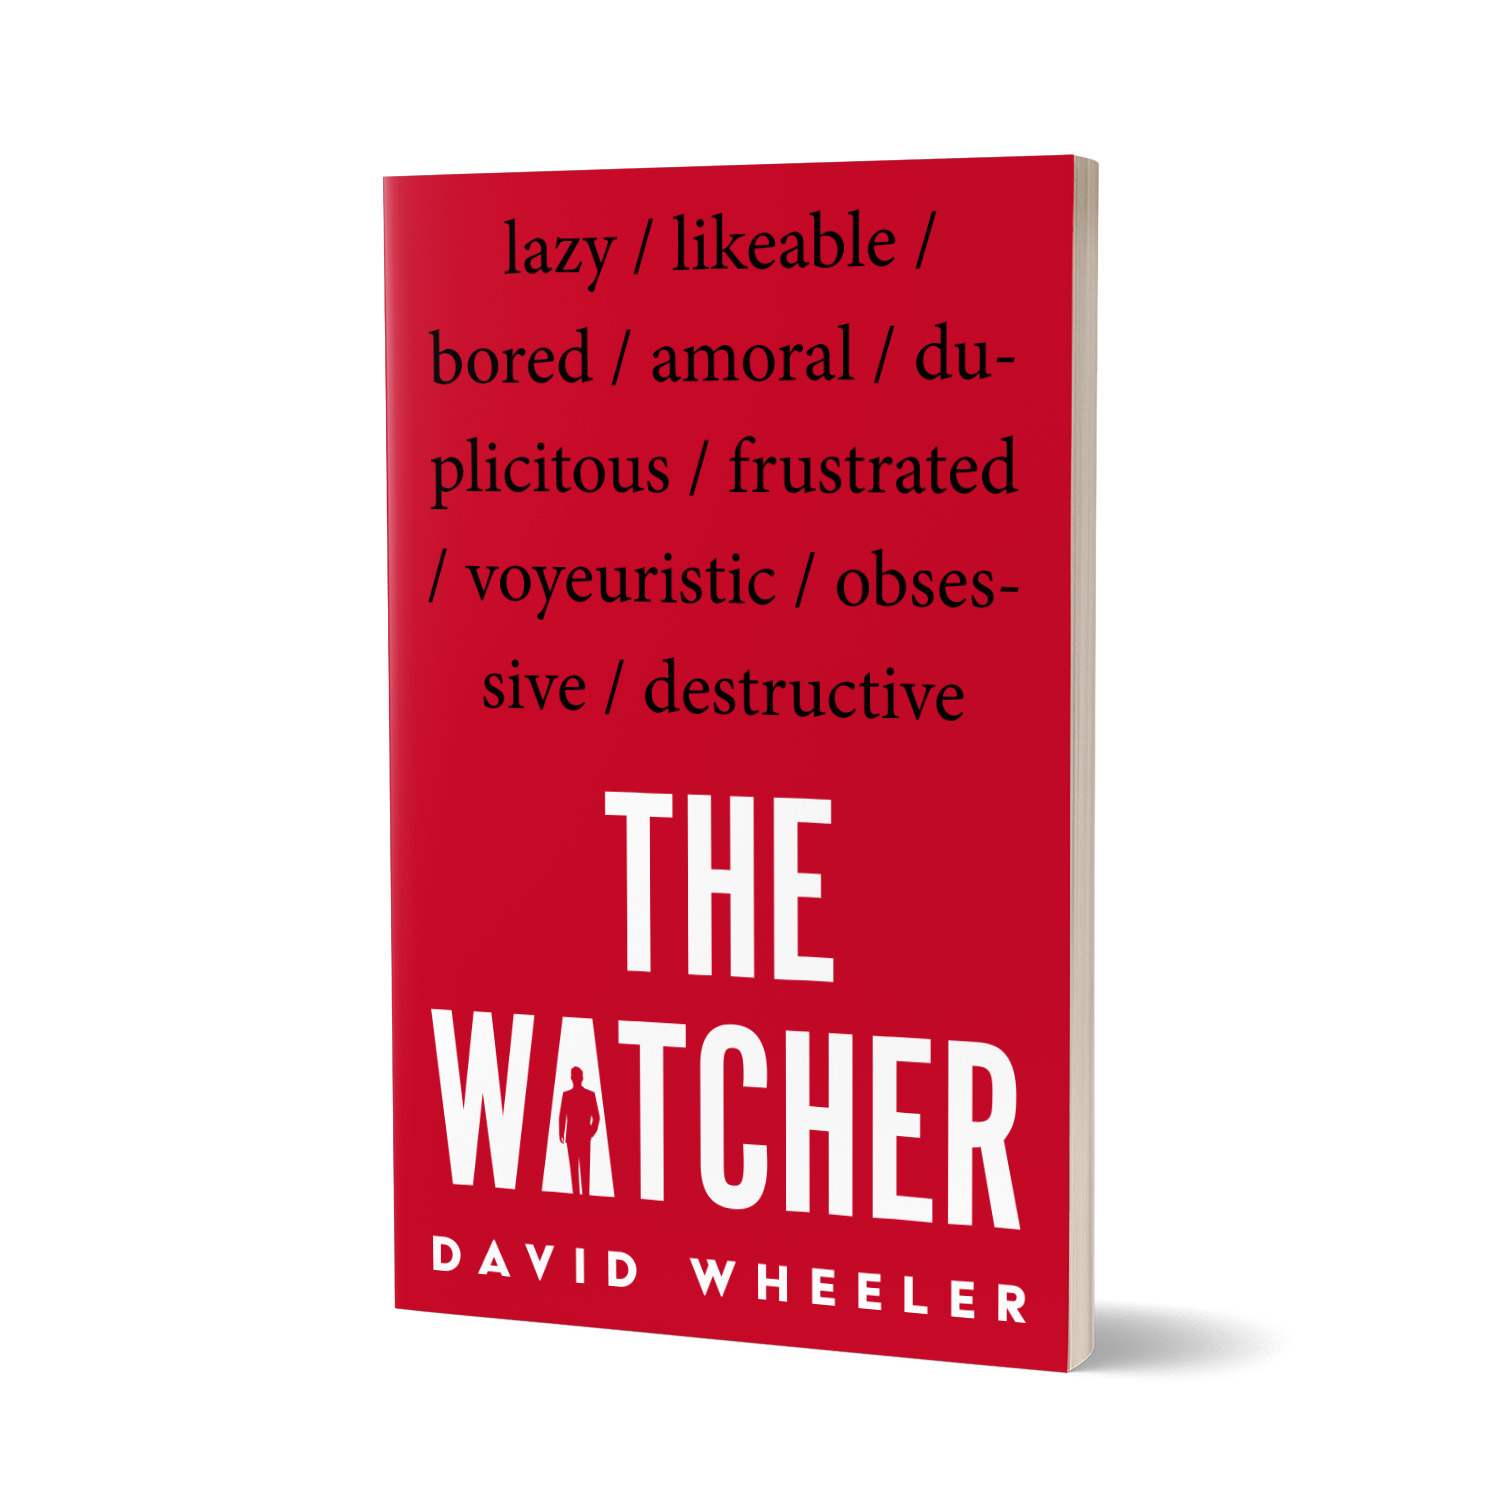 'The Watcher' is a cautionary tale of the perils of voyeurism. The author is David Wheeler. The book cover and interior were designed by Mark Thomas, of coverness.com. To find out more about my book design services, please visit www.coverness.com.